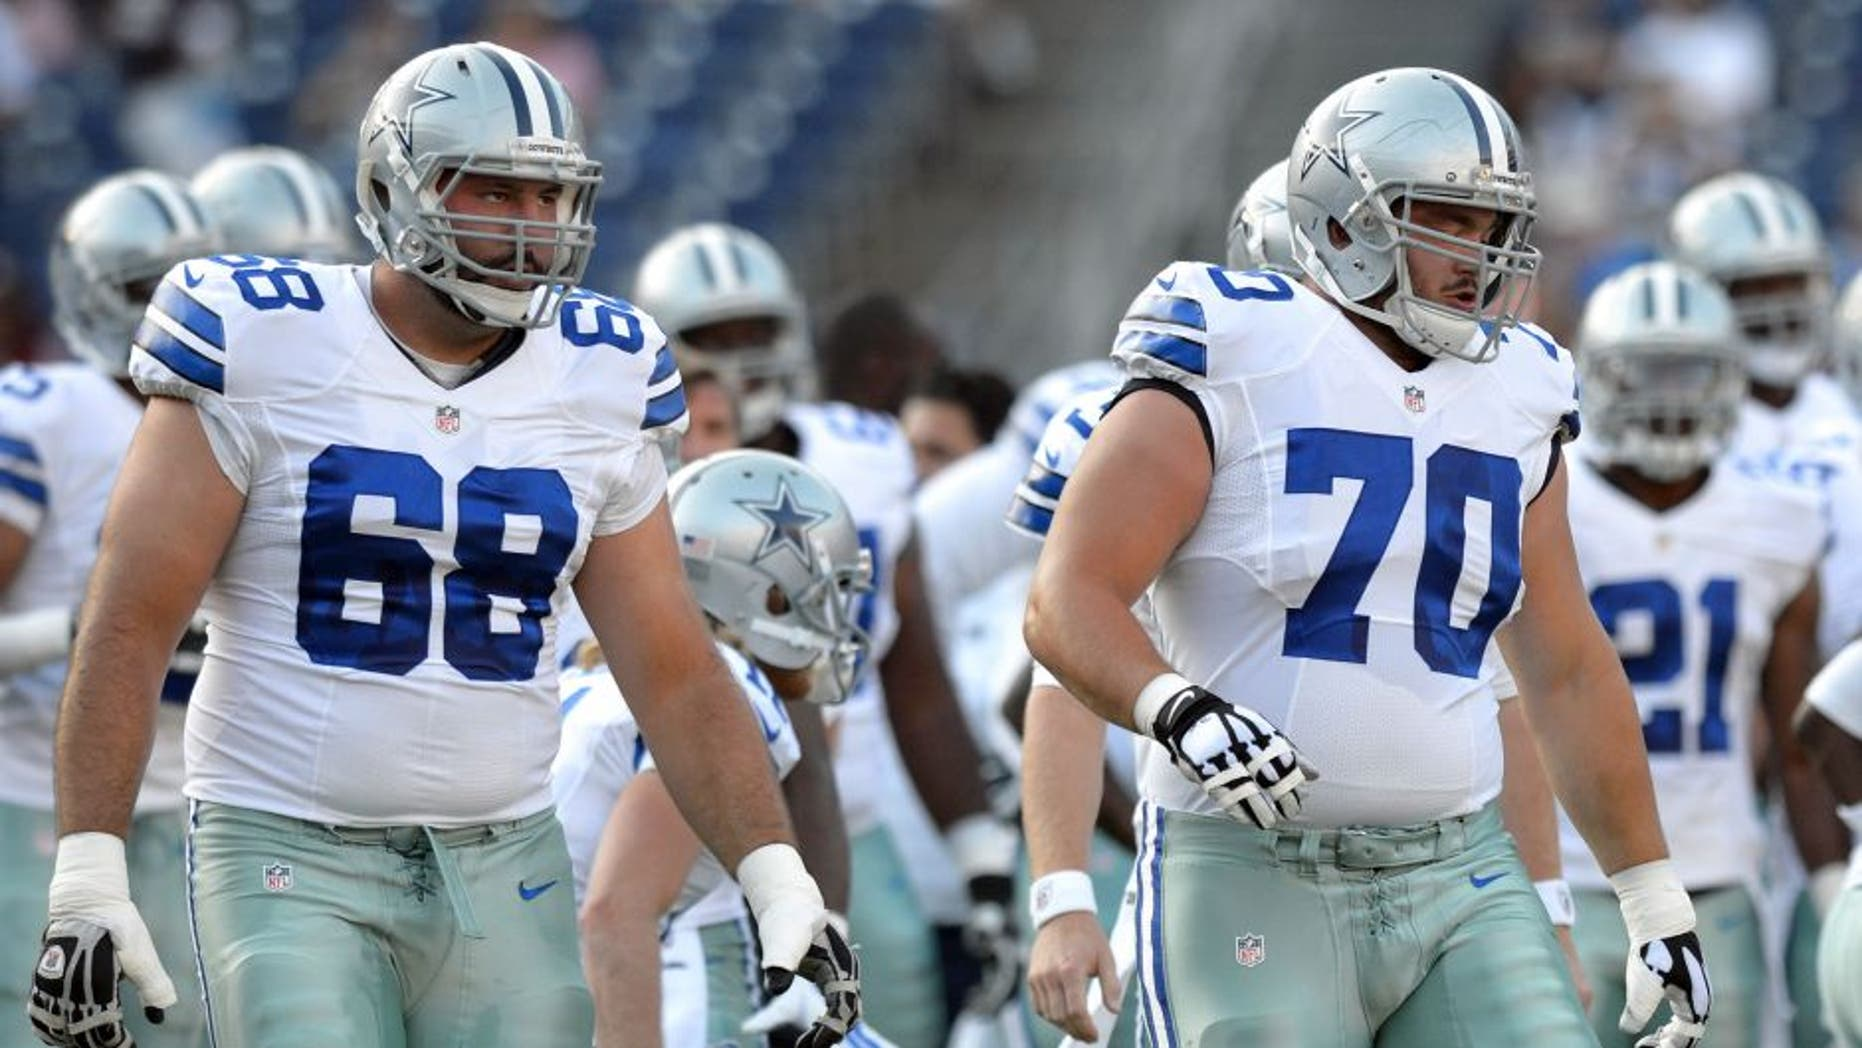 Aug 7, 2014; San Diego, CA, USA; Dallas Cowboys tackle Doug Free (68) and guard Zack Martin (70) warm-up before the game against the San Diego Chargers at Qualcomm Stadium. Mandatory Credit: Jake Roth-USA TODAY Sports